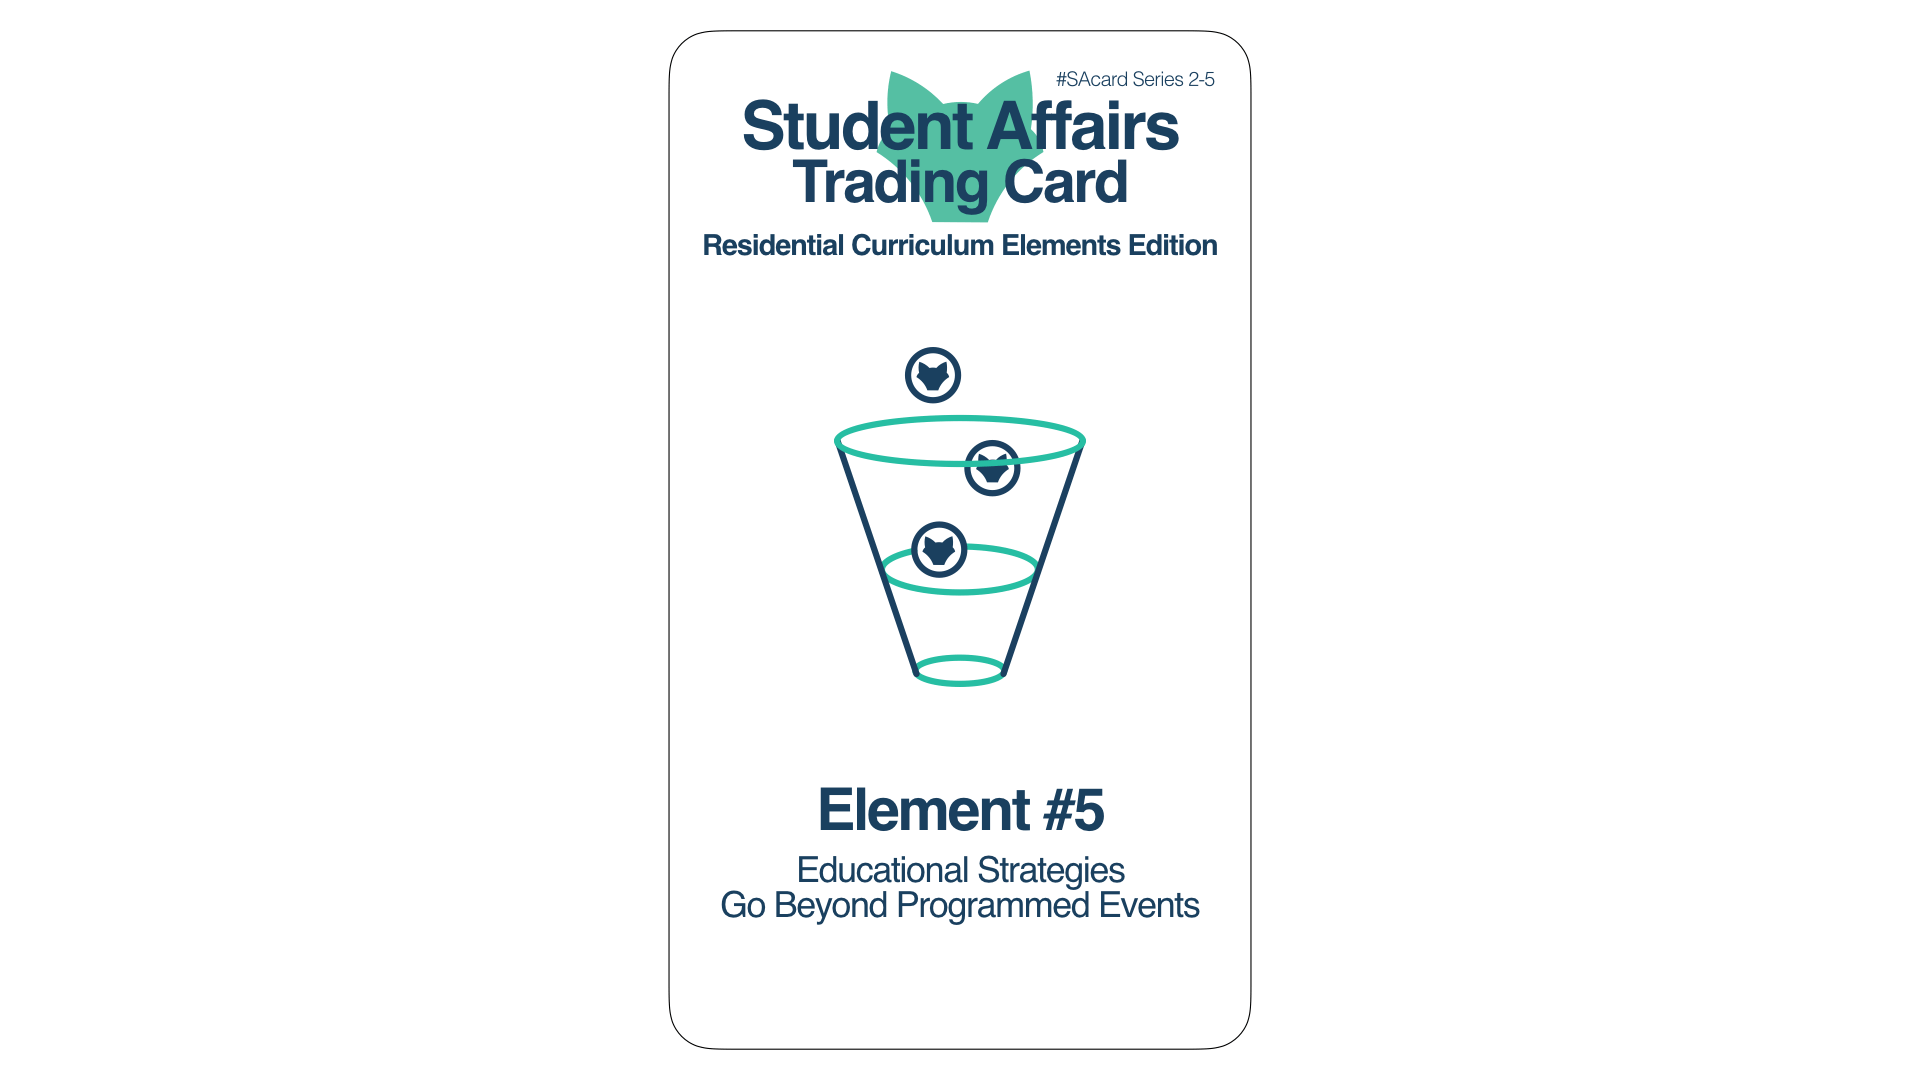 Student Affairs Trading Card 2-5: Residential Curriculum Element 5